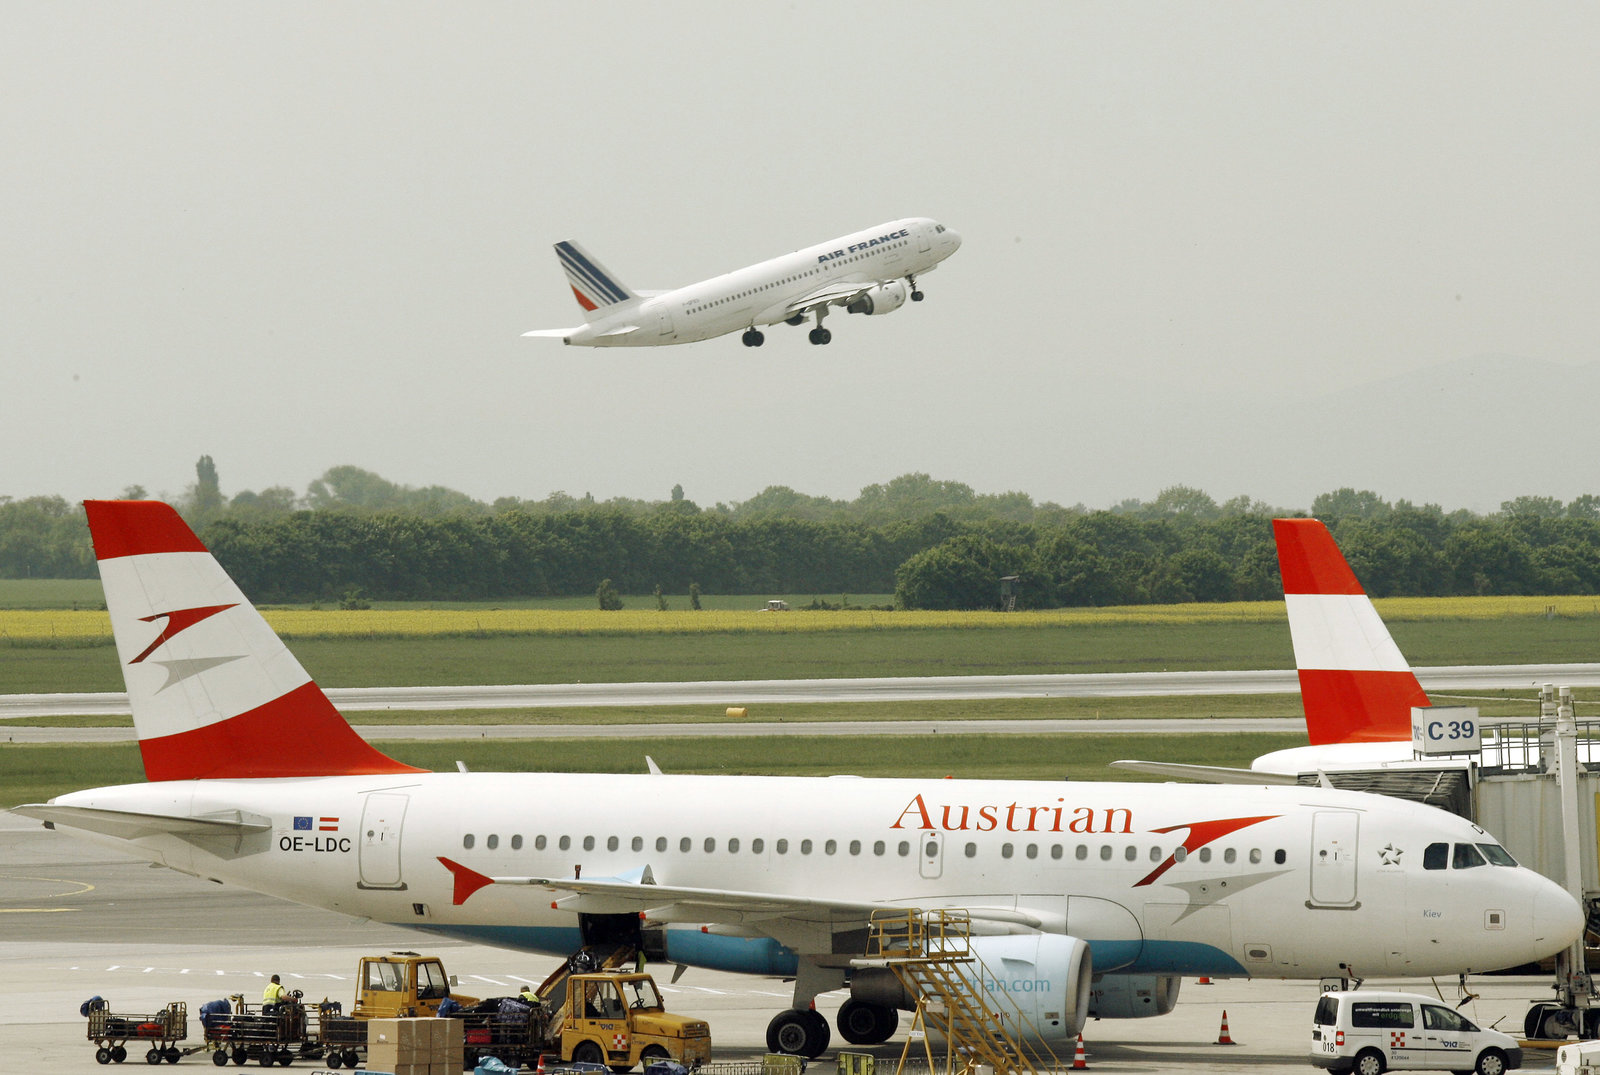 The Vienna airport expansion was blocked by an Austrian court